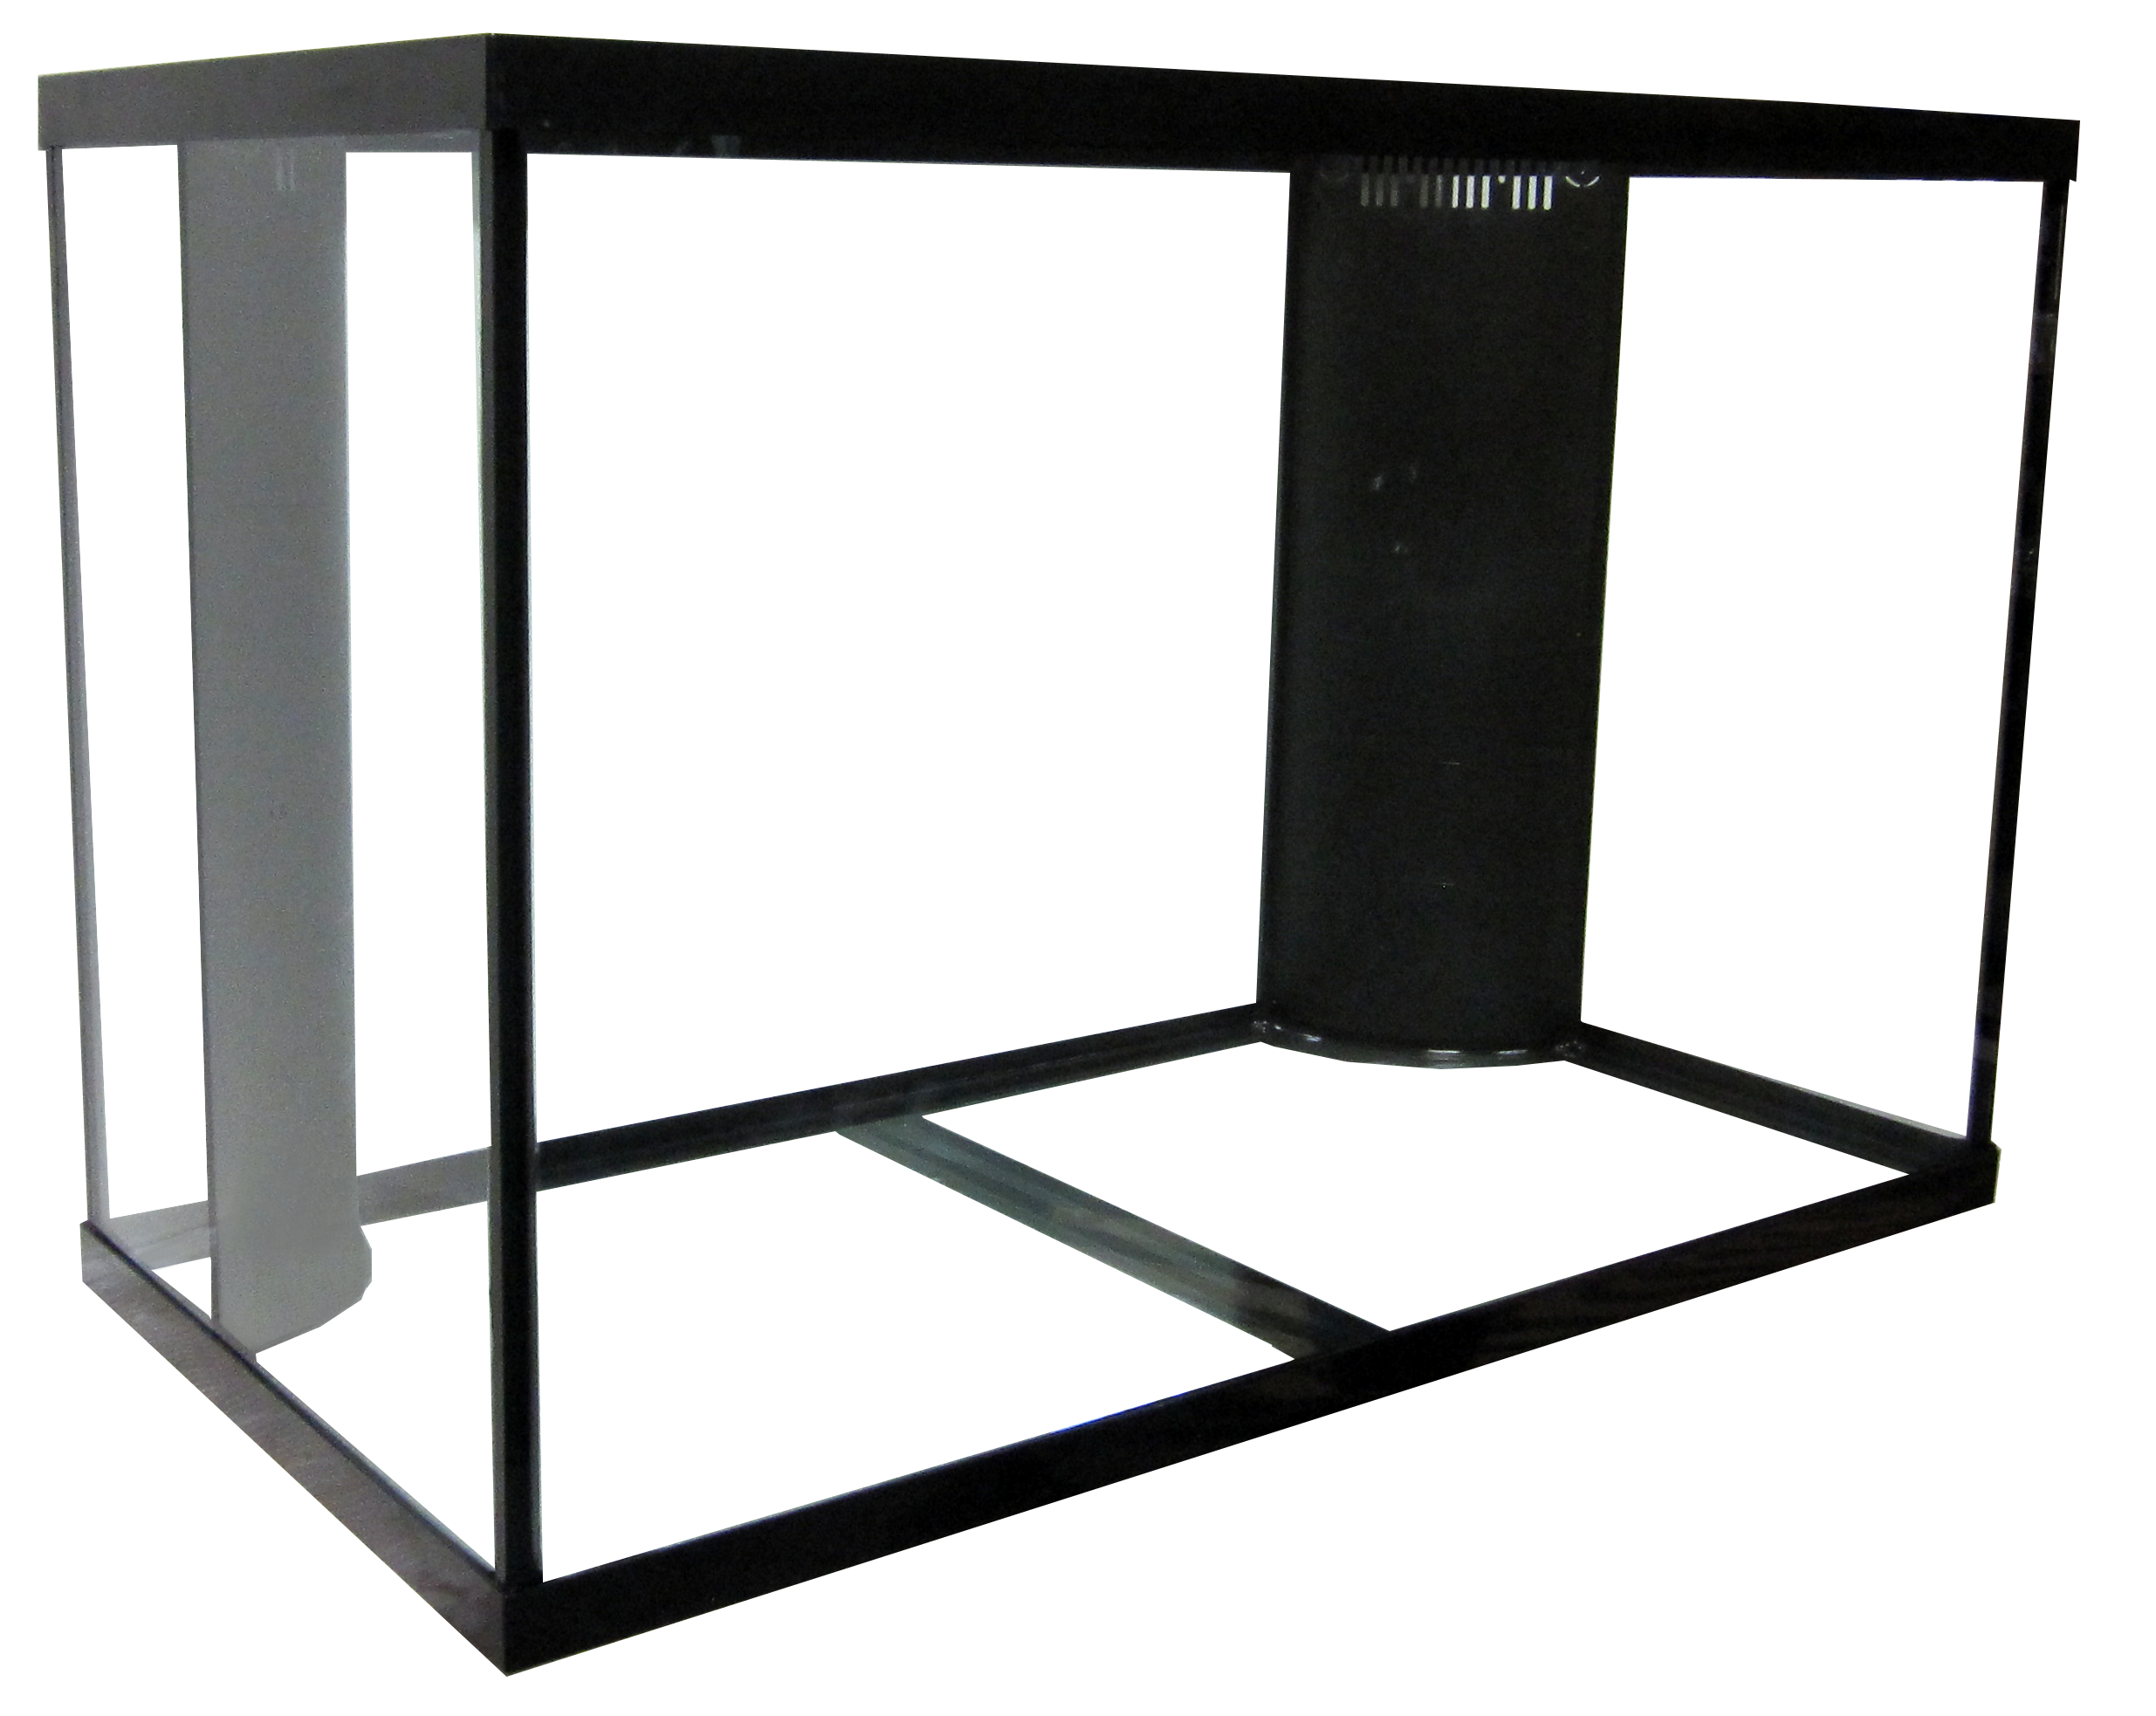 "150 Regular Dual Reef Ready Aquarium - 48x24x30""   SKU#: AM18152  UPC#: 7-49729-18152-1  Product Dimension: 48.5""x24.5""x31.38""  Capacity: Approximately 150 gallons  Weight: 195.4 lbs"